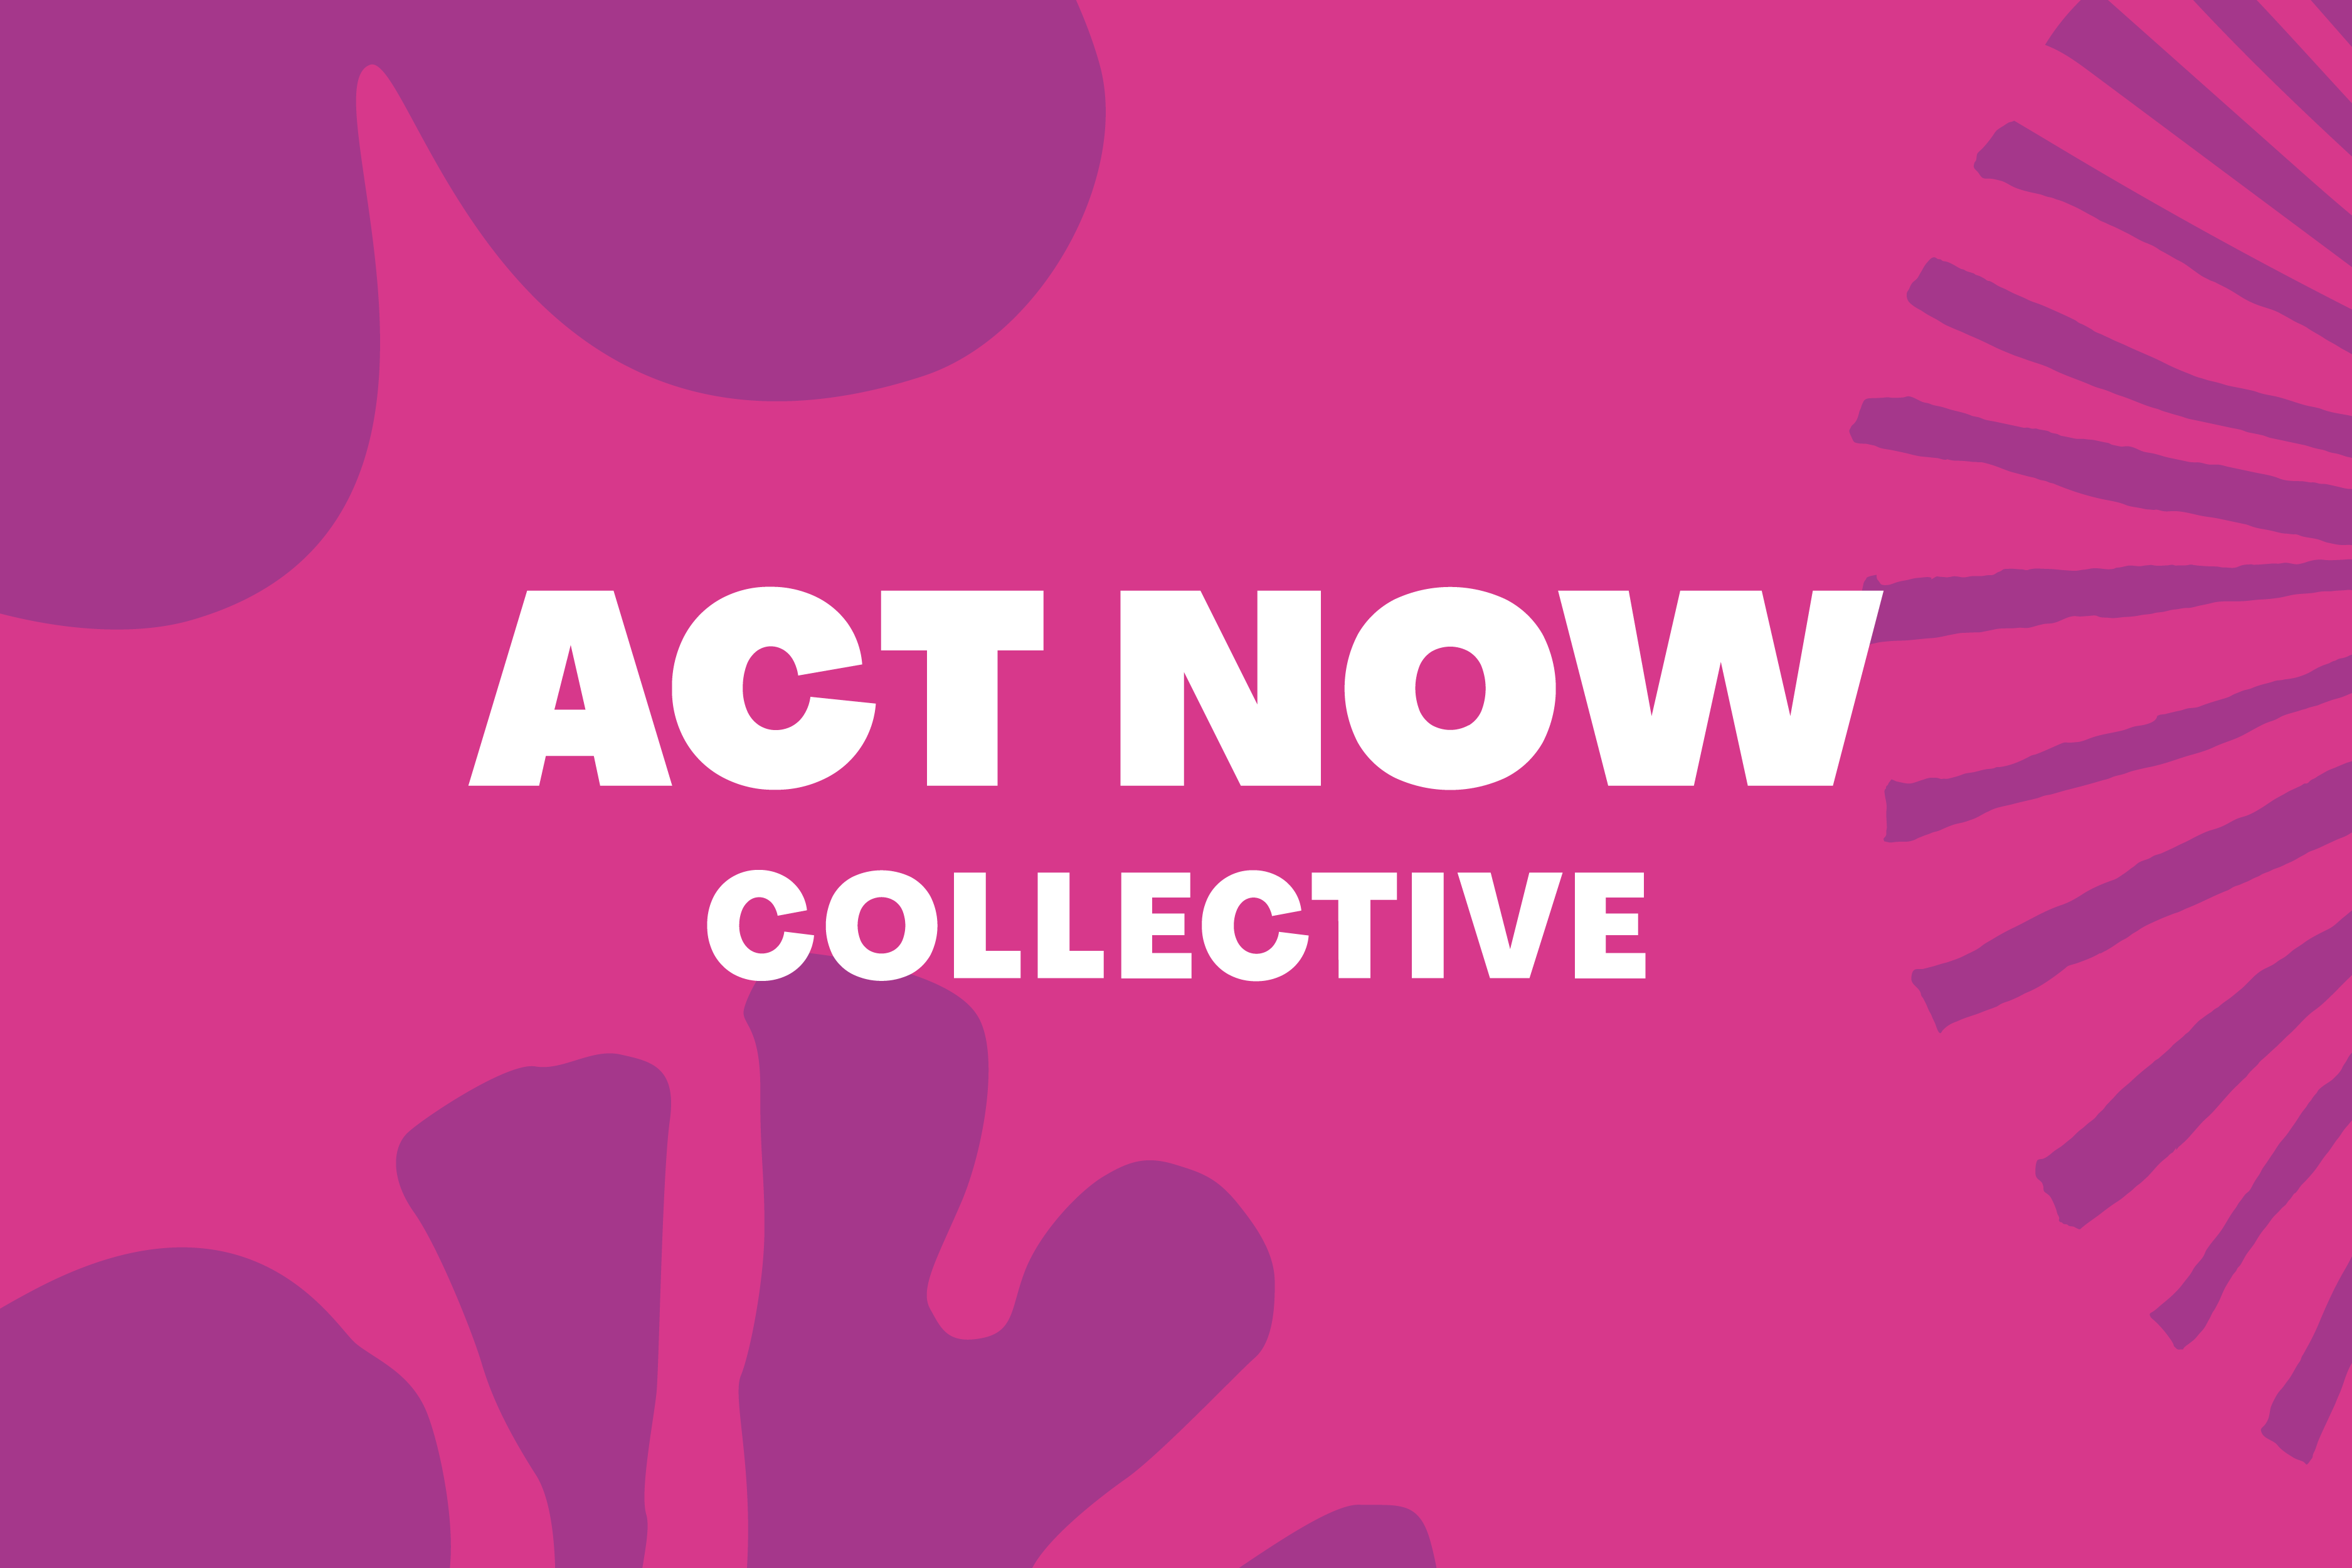 Cover image: The Act Now Collective